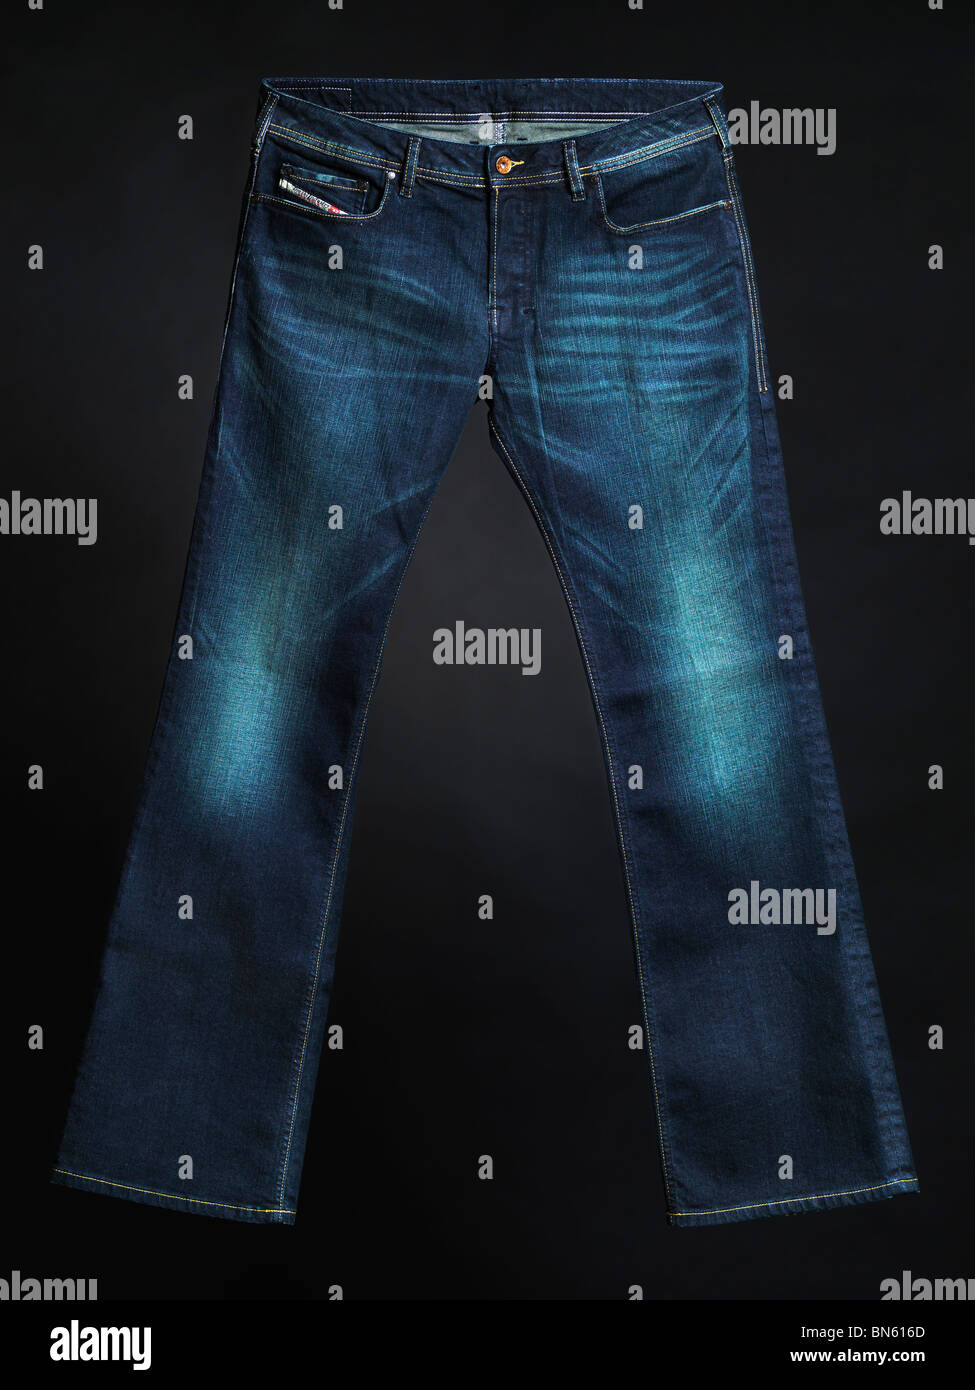 Diesel jeans Zathan. Men boot cut washed denim pants isolated on black background. - Stock Image